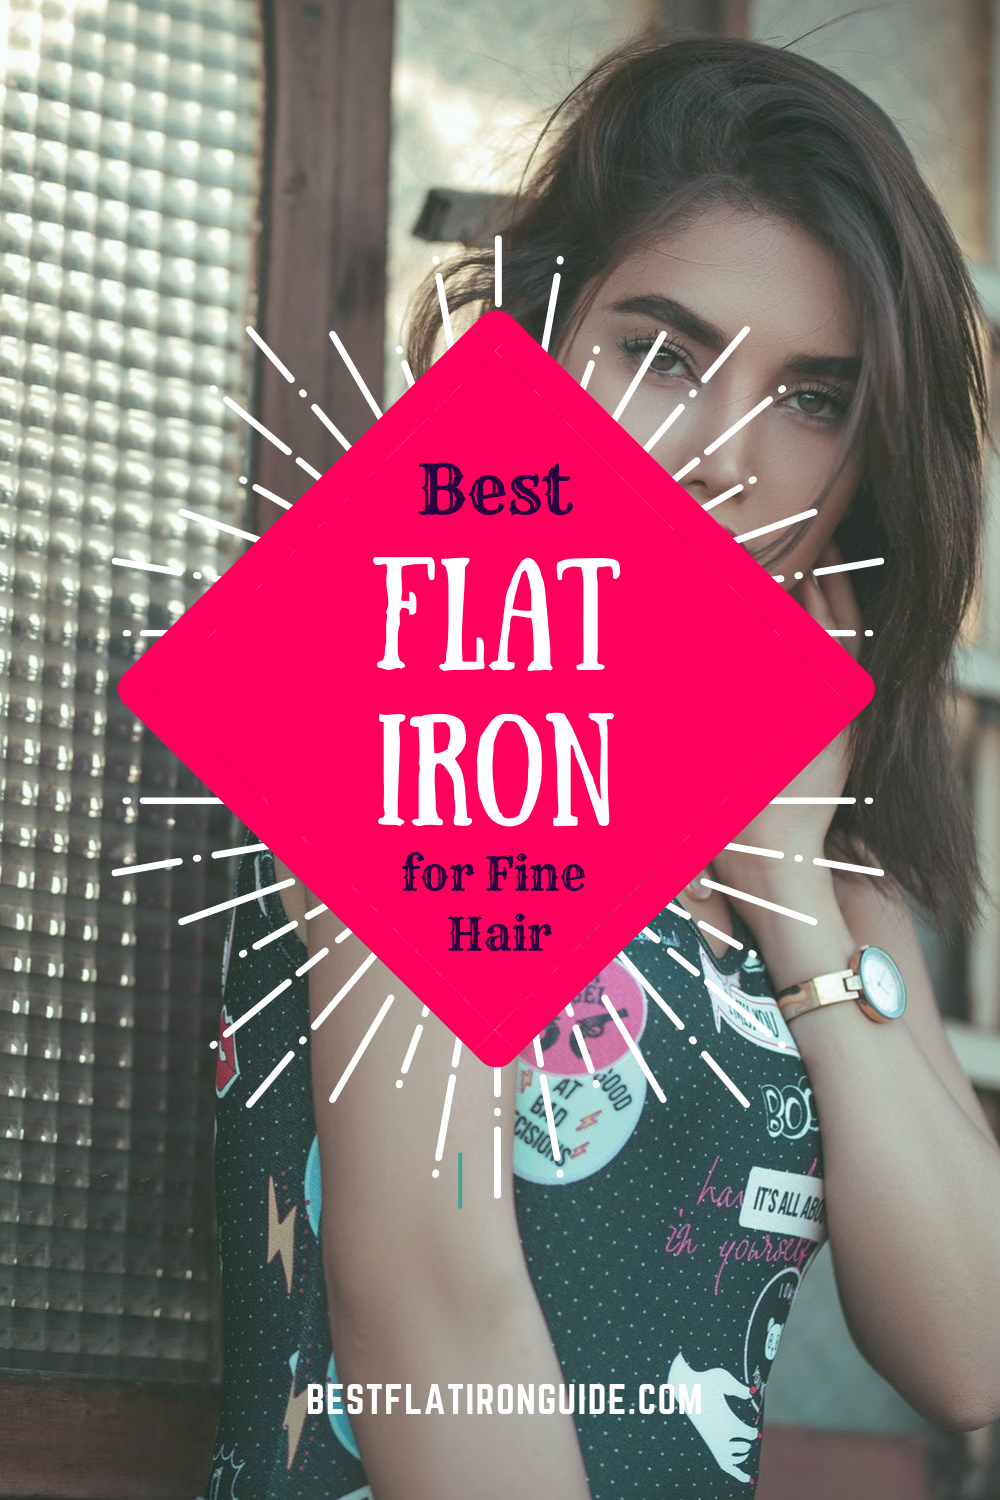 Best Flat iron for Fine Hair - Read complete analysis about Best Straightener Iron for Fine Hair. #flatironwaves Hair Straightener is requisite for a makeover as it makes hair look super shiny and silky. Best Straightener iron or flat iron is the tool used to change the structure of the hair temporarily by breaking the hydrogen bond in the hair cortex. Here you will find best Flat Iron or Best hair Straightener iron for you according to your hair type. #bestflatiron #bestFlatIronforfinehair #str #flatironwaves